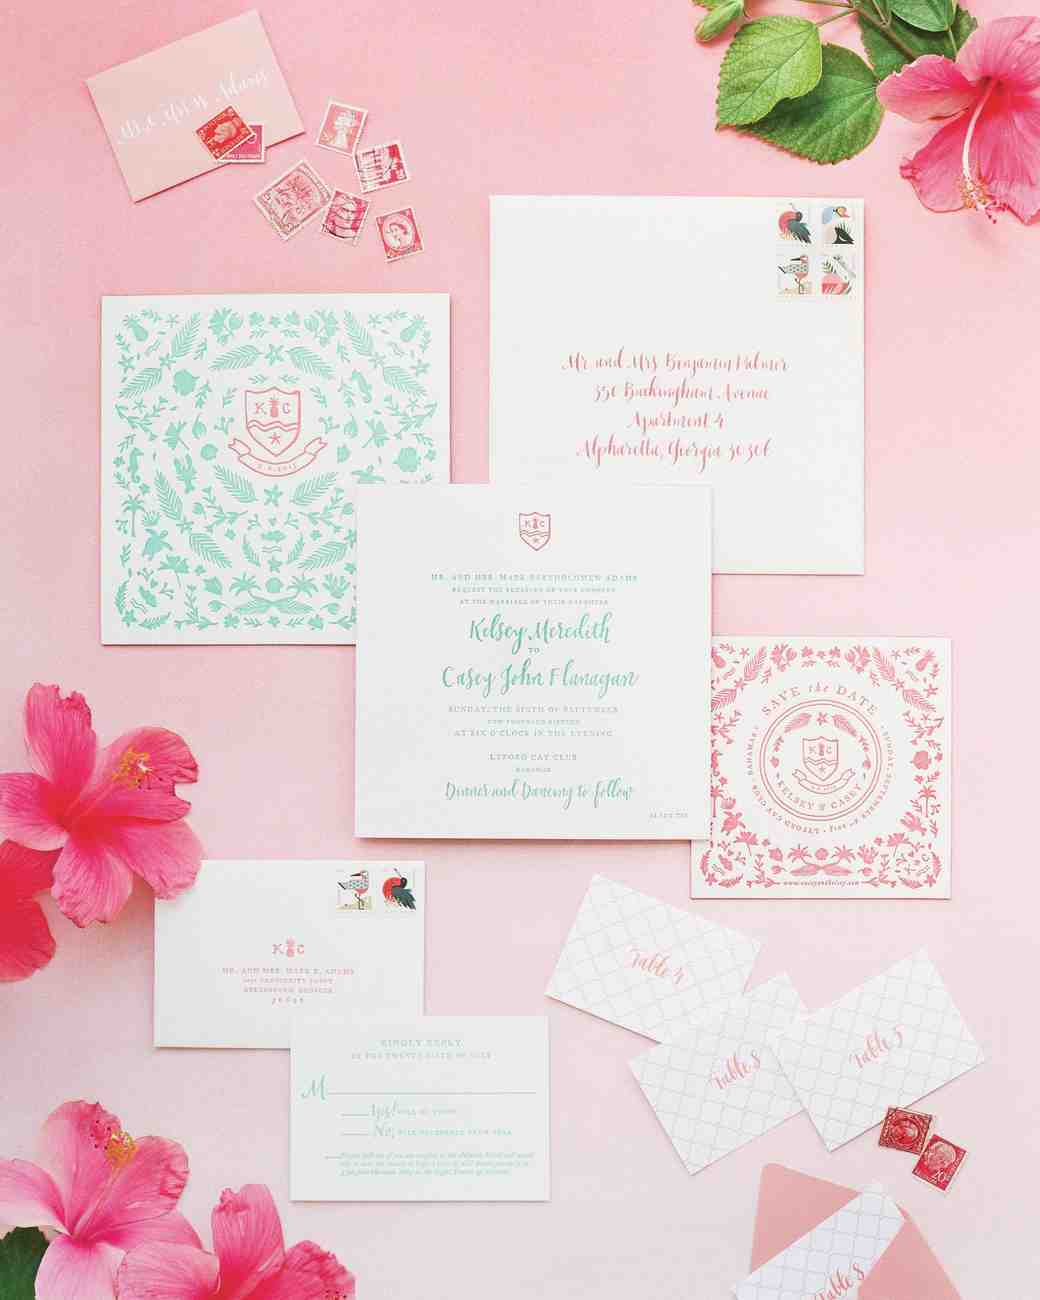 kelsey-casey-real-wedding-pink-invitations-suite.jpg